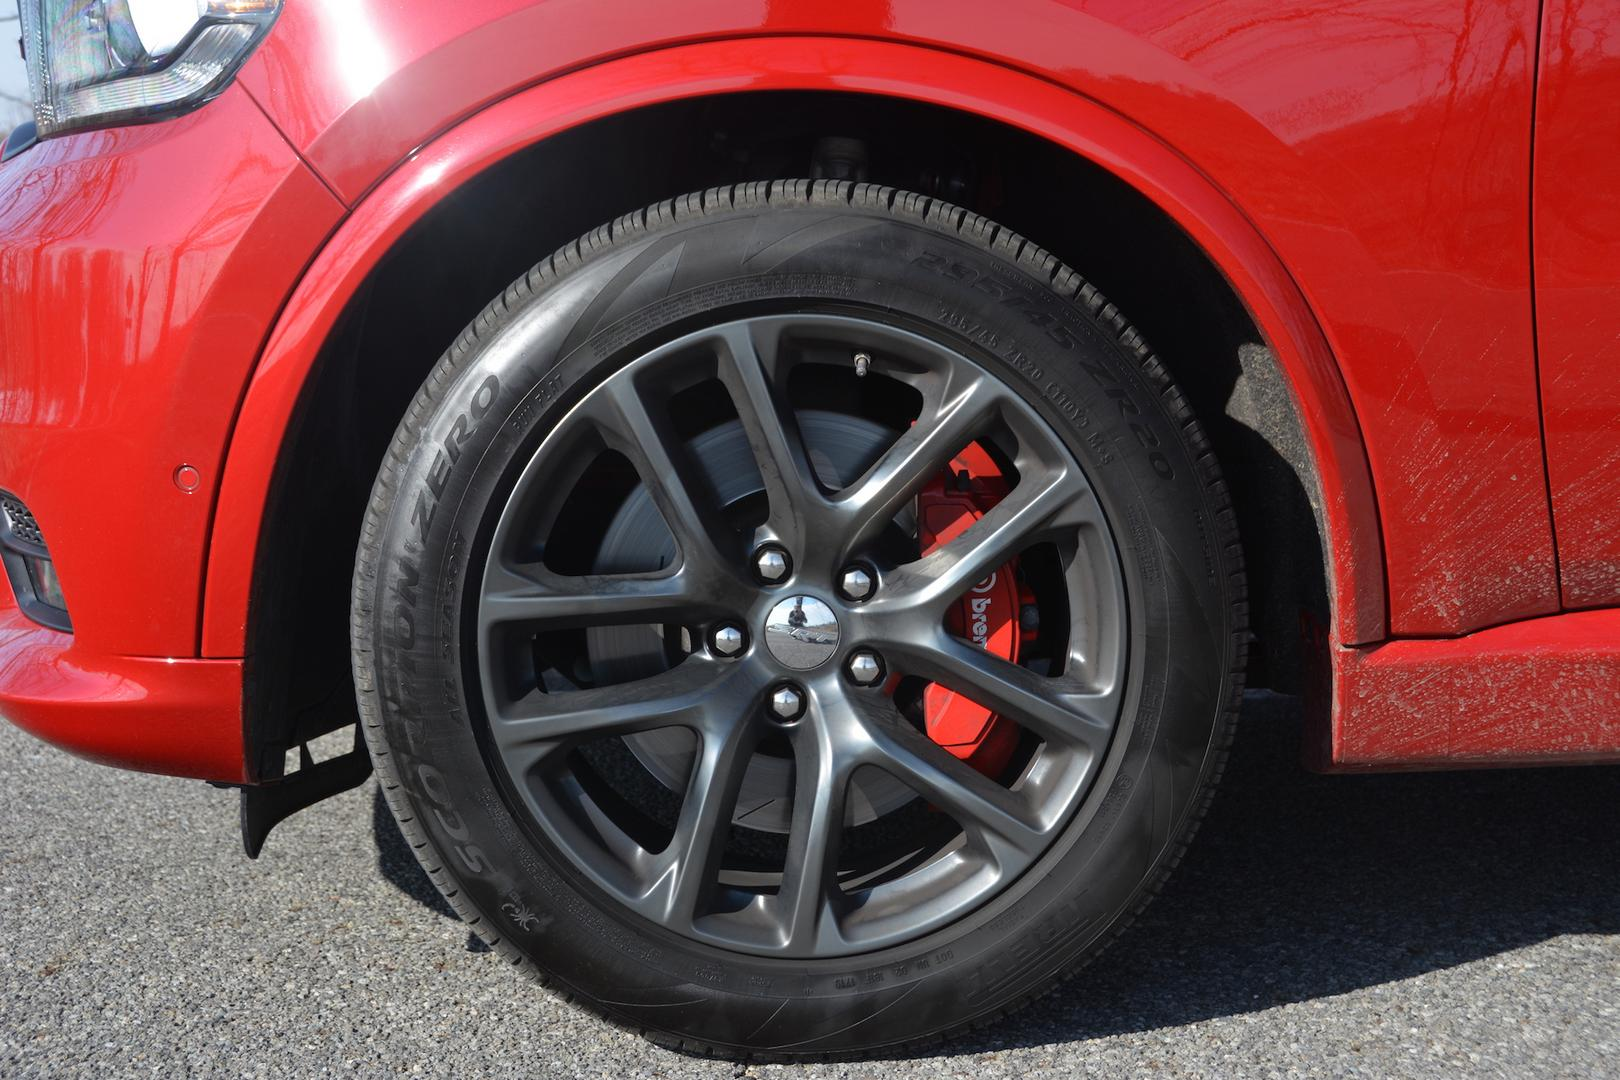 2020 Dodge Durango SRT 392 Wheels